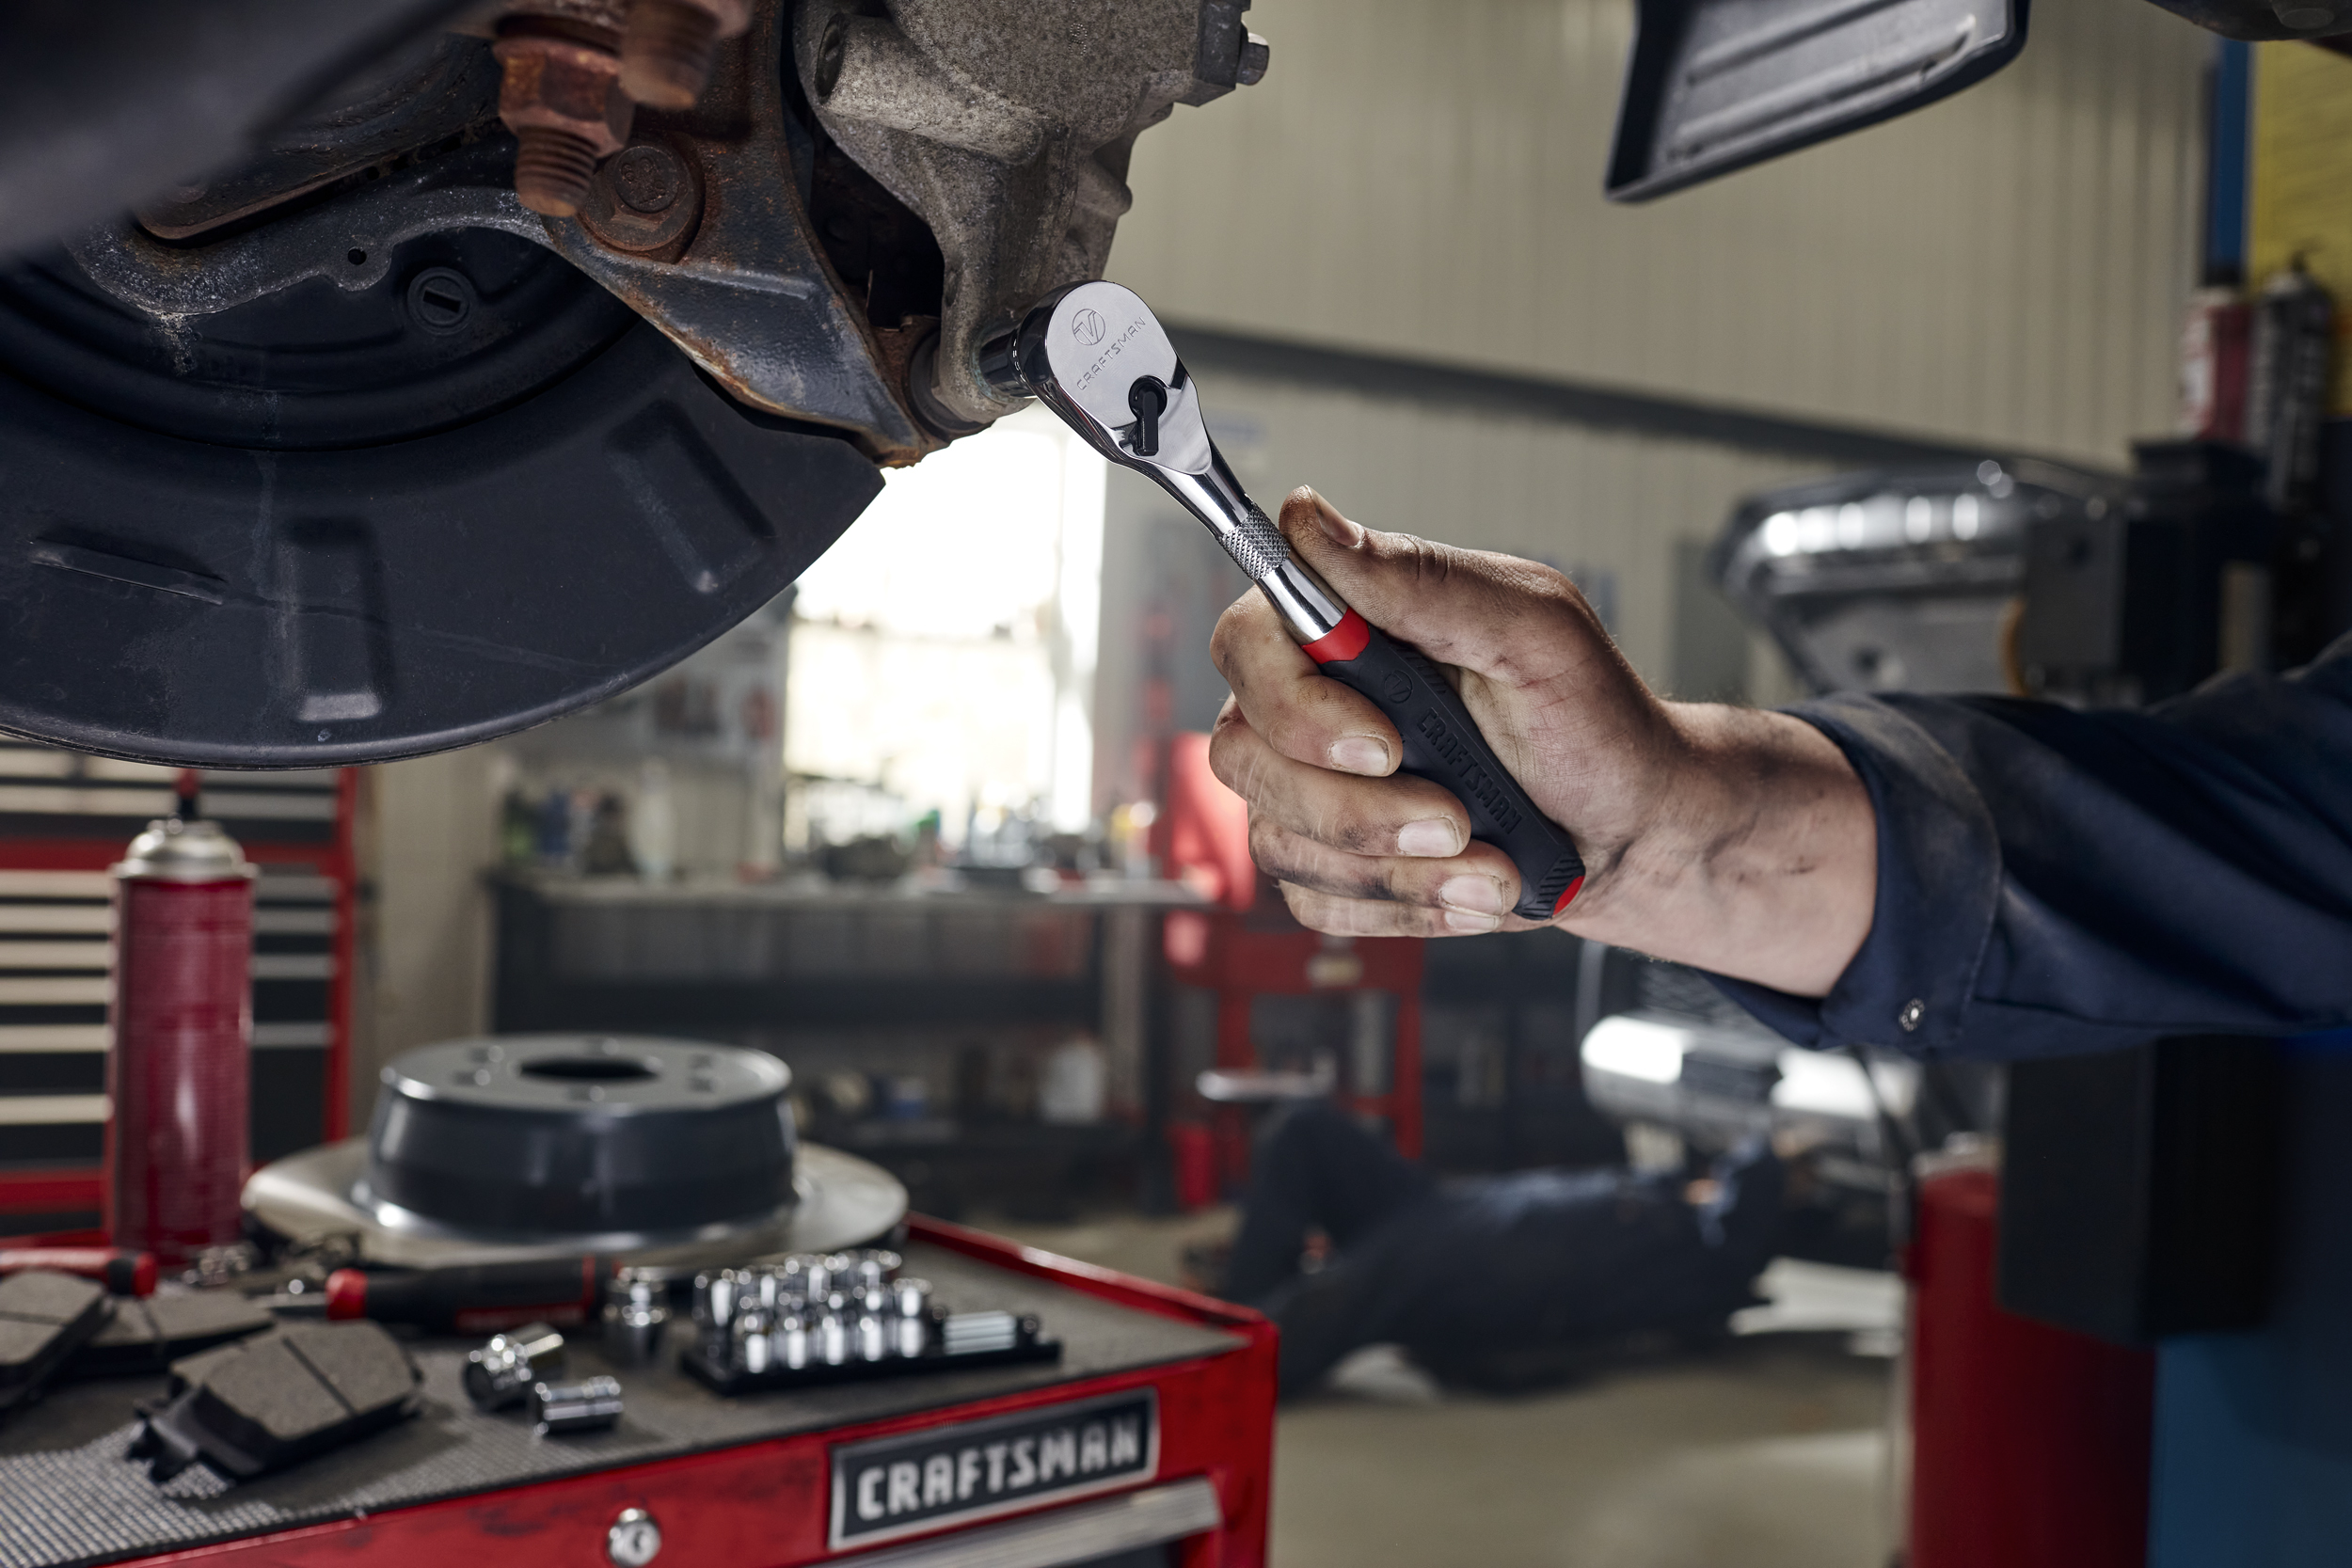 CRAFTSMAN® Unveils New V-Series™ Line of Premium Tools for Automotive and Industrial Use, Backed by a Lifetime Warranty